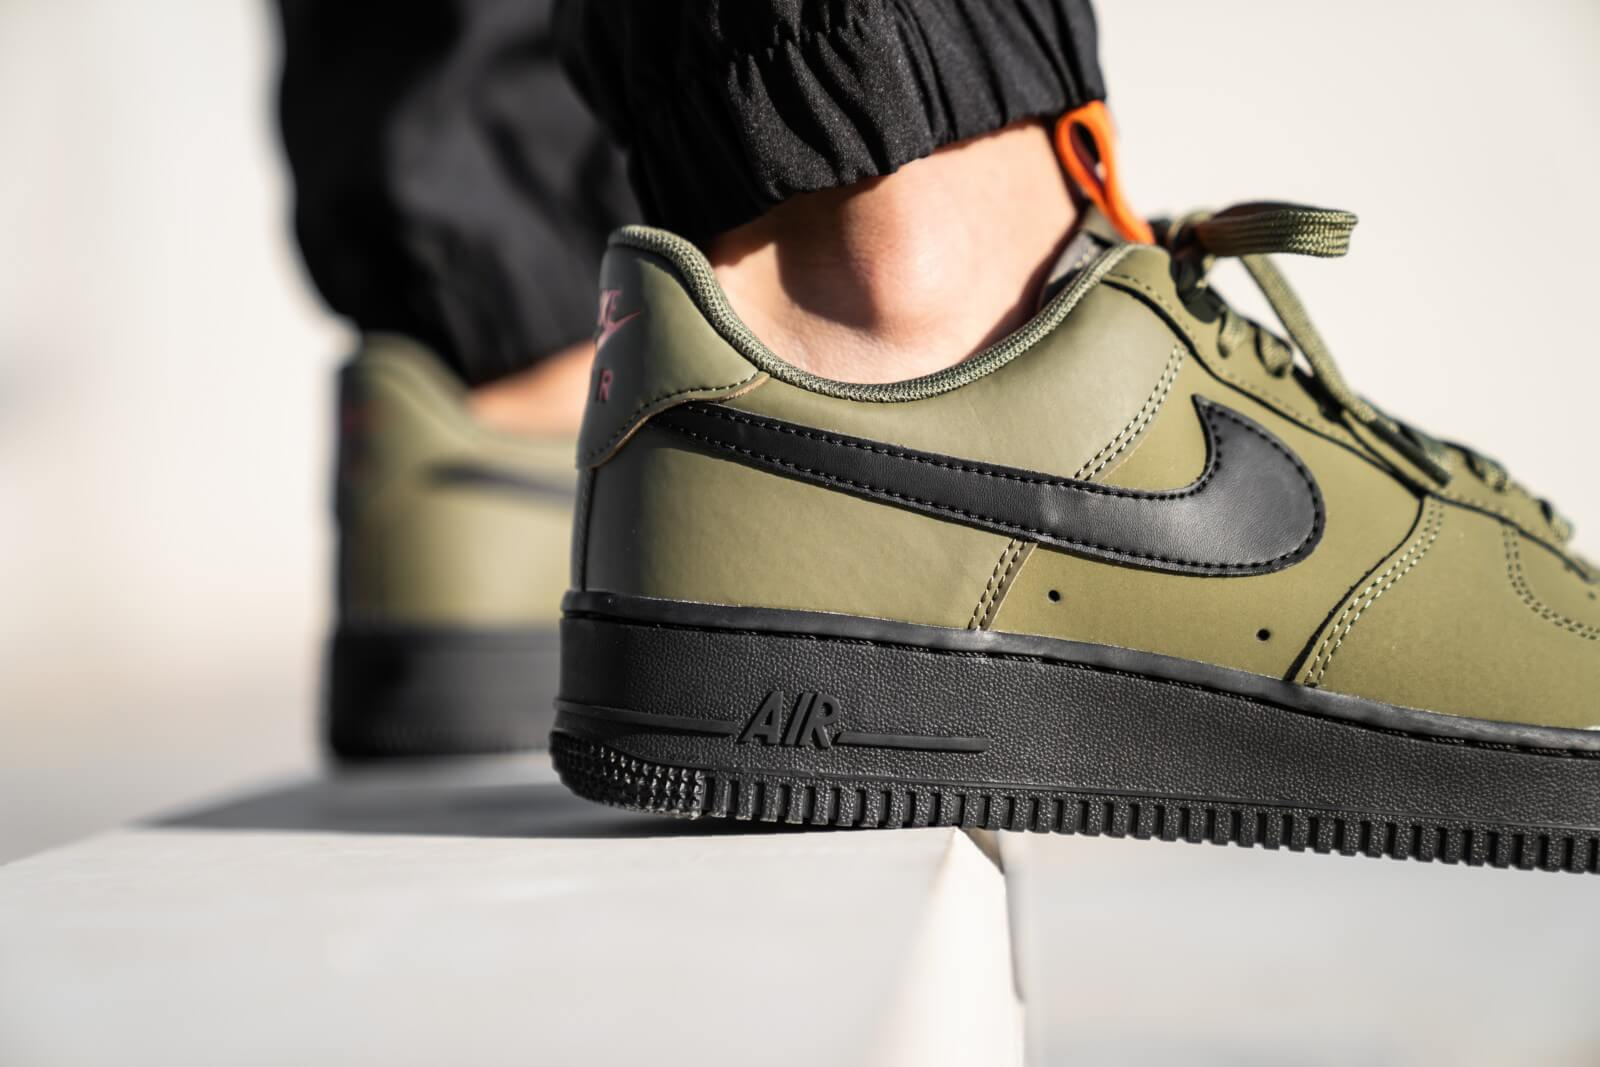 Gran universo Inicialmente preferible  Nike Air Force 1 '07 Medium Olive/Black-Starfish - BQ4326-200